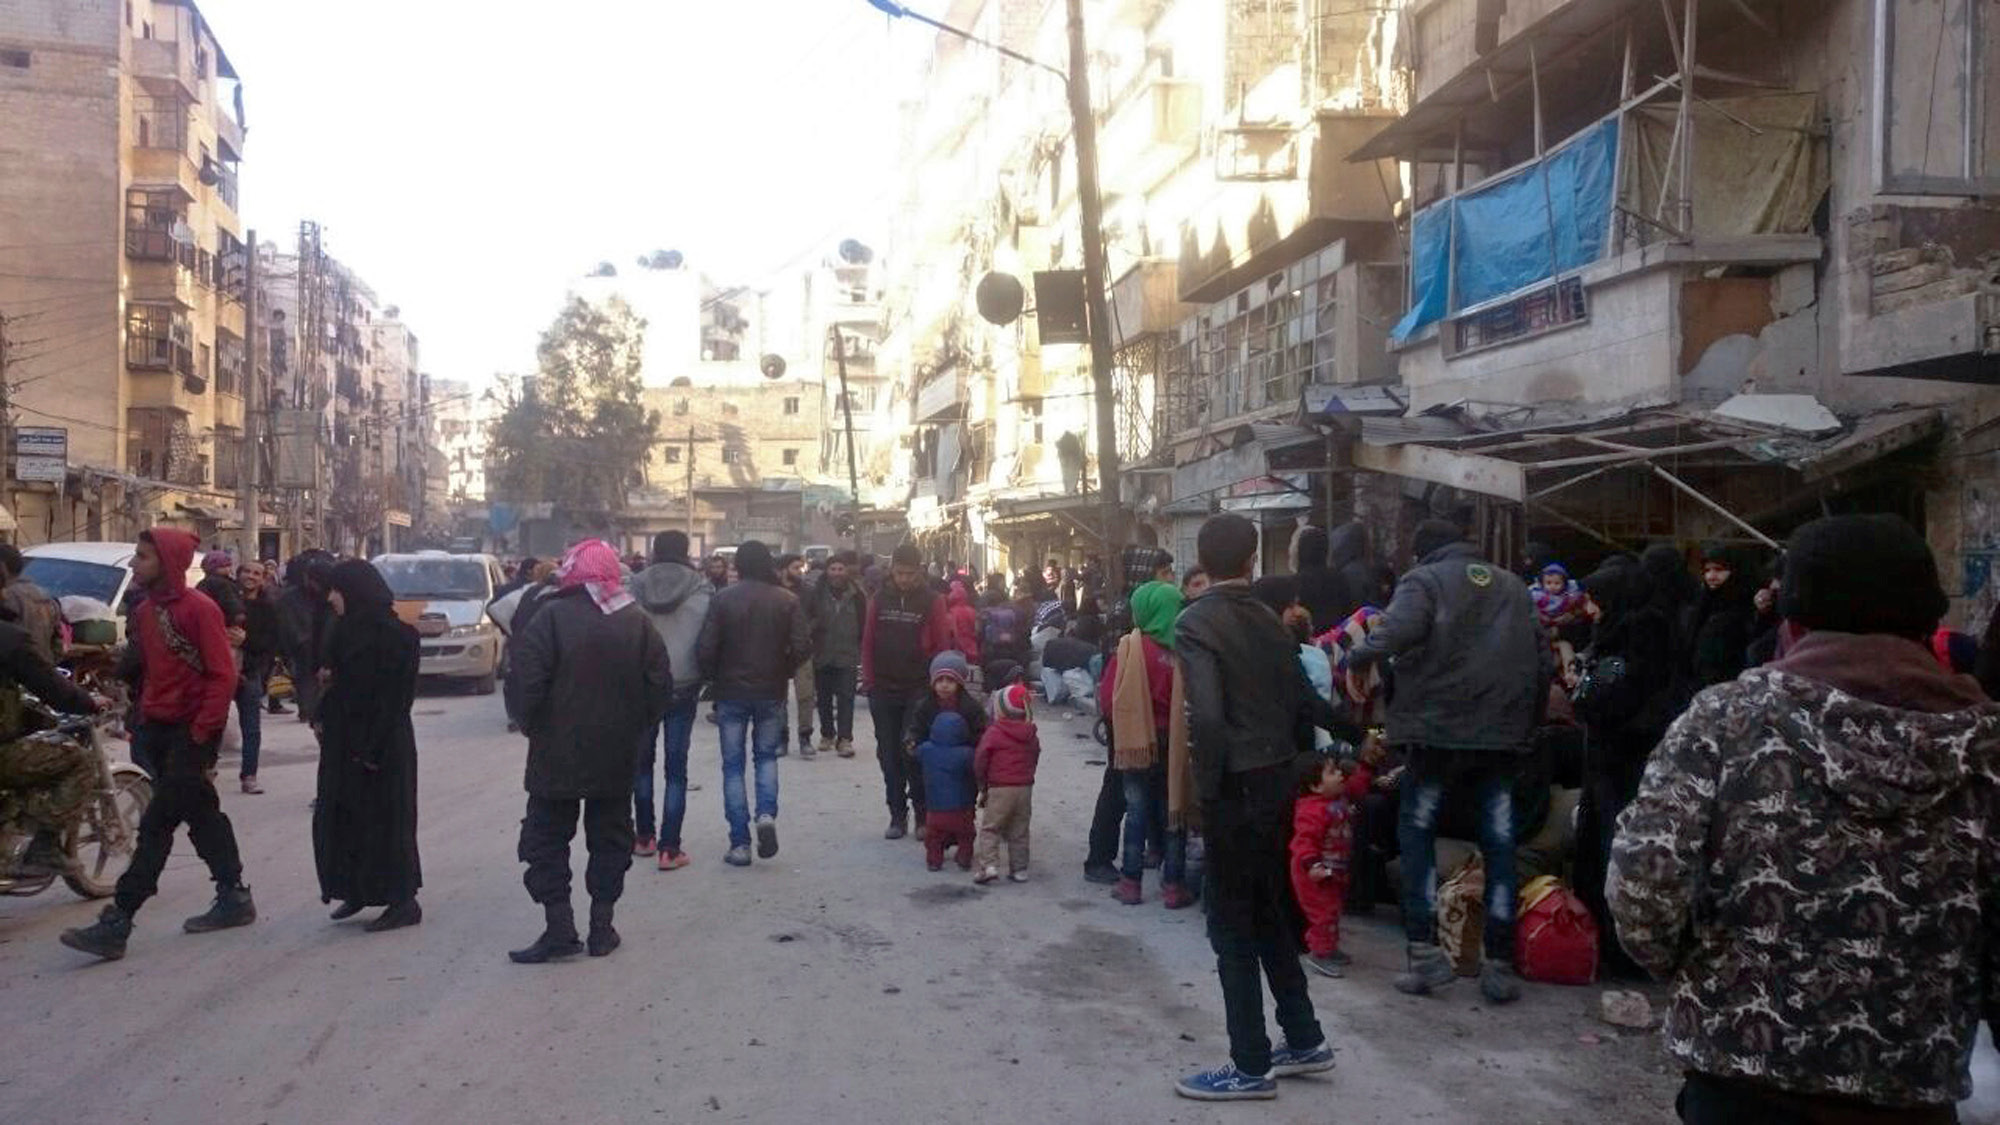 Eastern Aleppo residents wait in the streets to be evacuated from the war-torn city of Aleppo, Syria, Thursday, Dec. 15, 2016. Residents in eastern Aleppo are starting to board buses and ambulances as the long-awaited pullout from the last rebel enclave in the embattled city gets underway. The evacuation is part of a cease-fire deal reached this week to have the opposition surrender their last foothold in Aleppo to Syrian government control in the face of a devastating ground and air offensive by government forces. (UGC via AP)